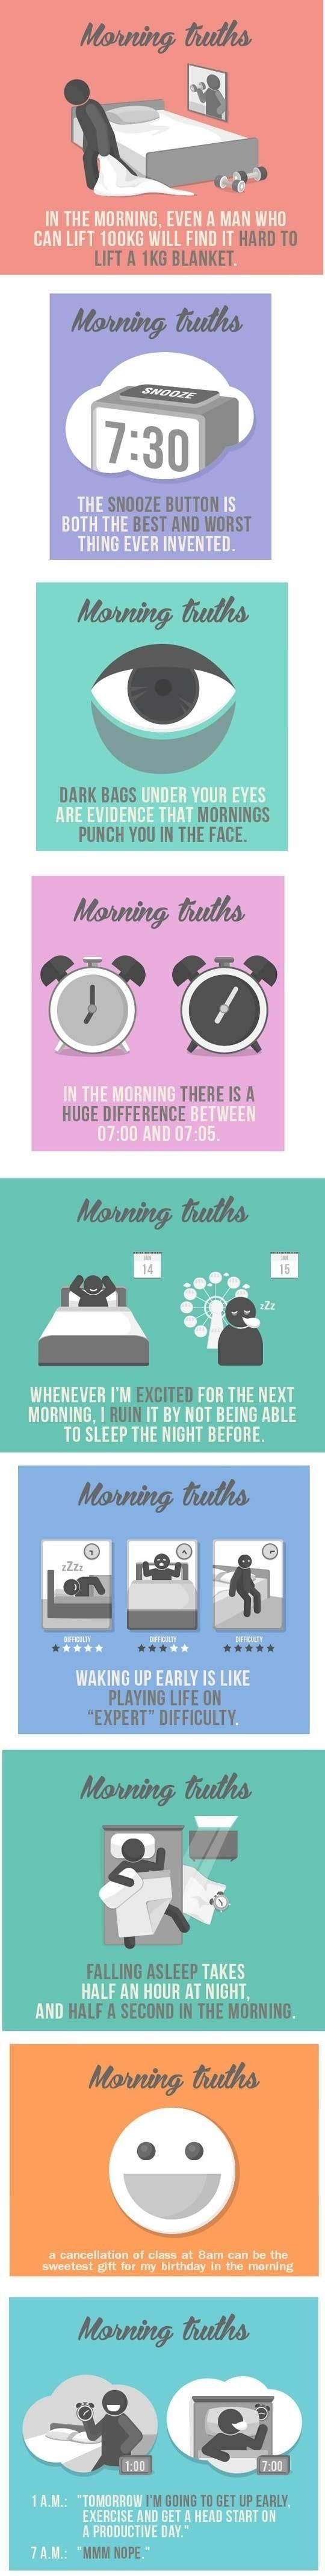 Morning truths. Especially the last one everyday!